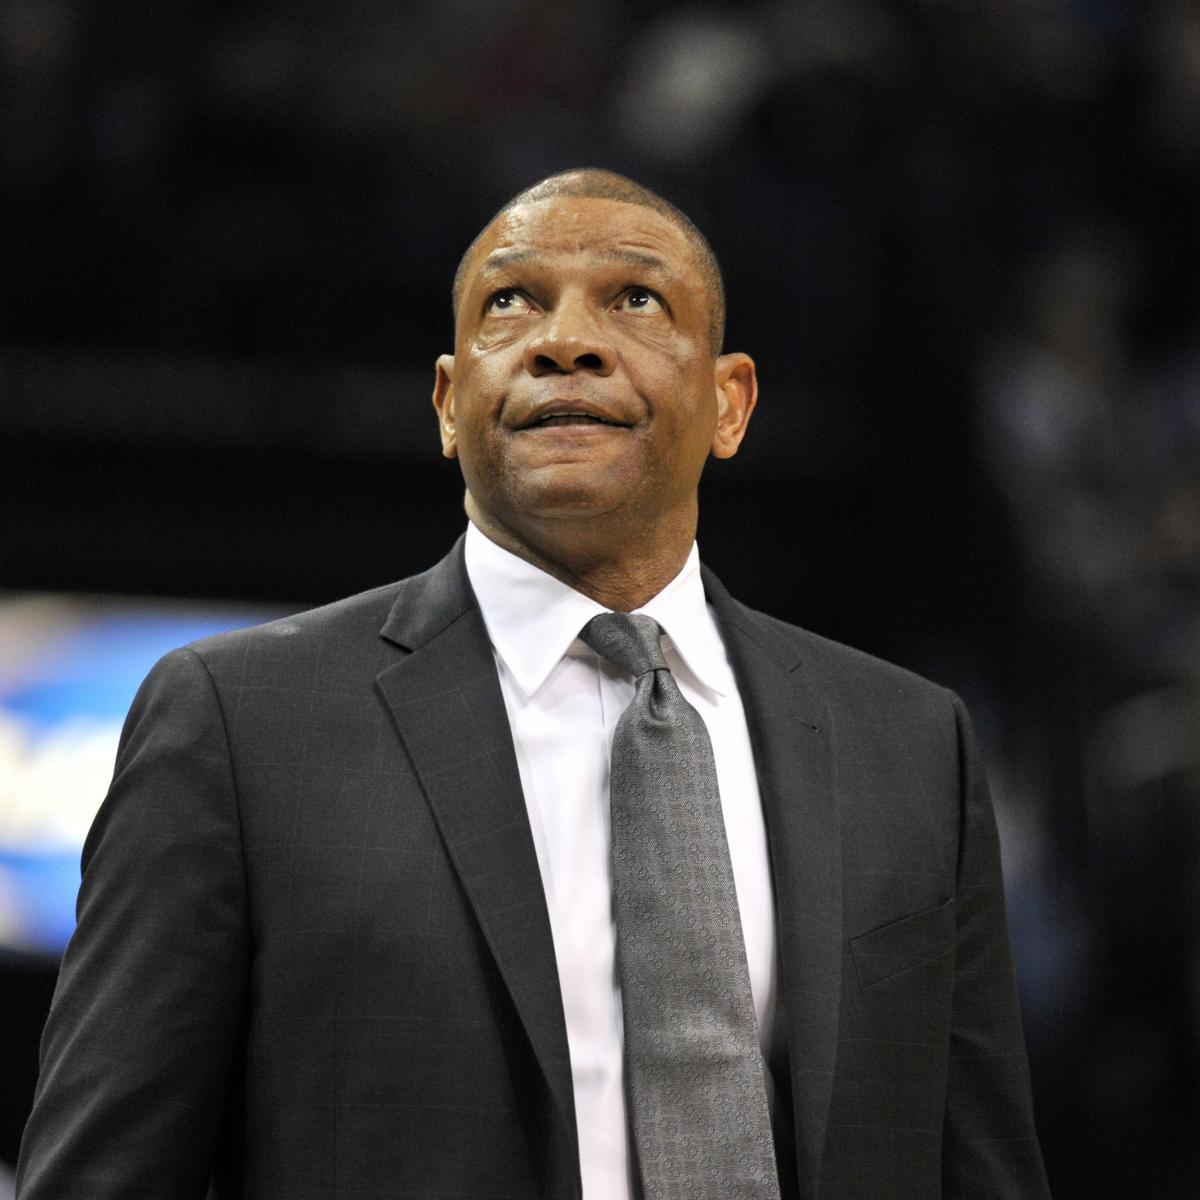 Blazers Head Coach: Doc Rivers Tears Up Thinking About Mother Prior To Game 5